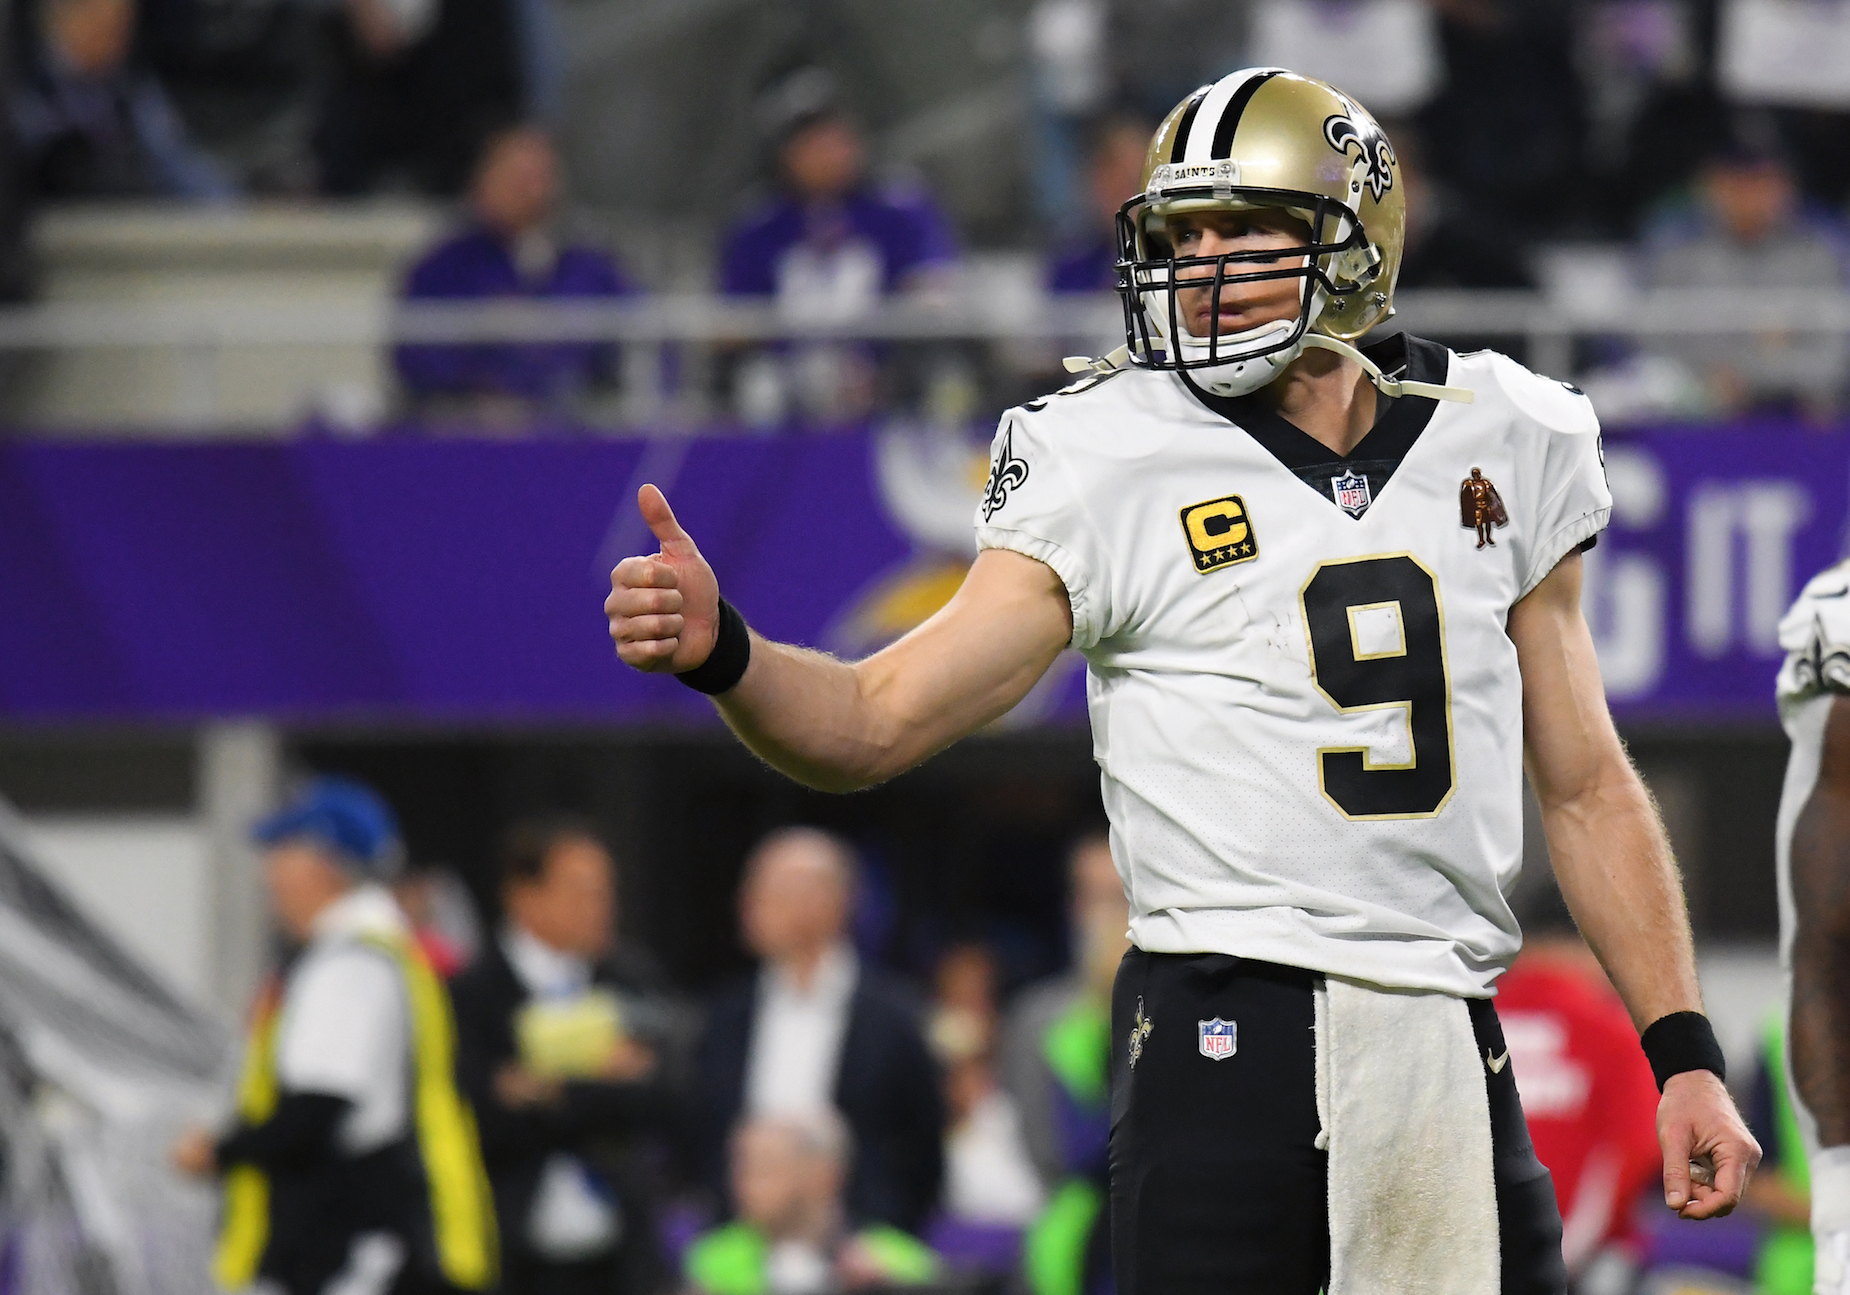 While Drew Brees will miss some time with his latest injury, the New Orleans Saints quarterback believes he'l be back in no time.